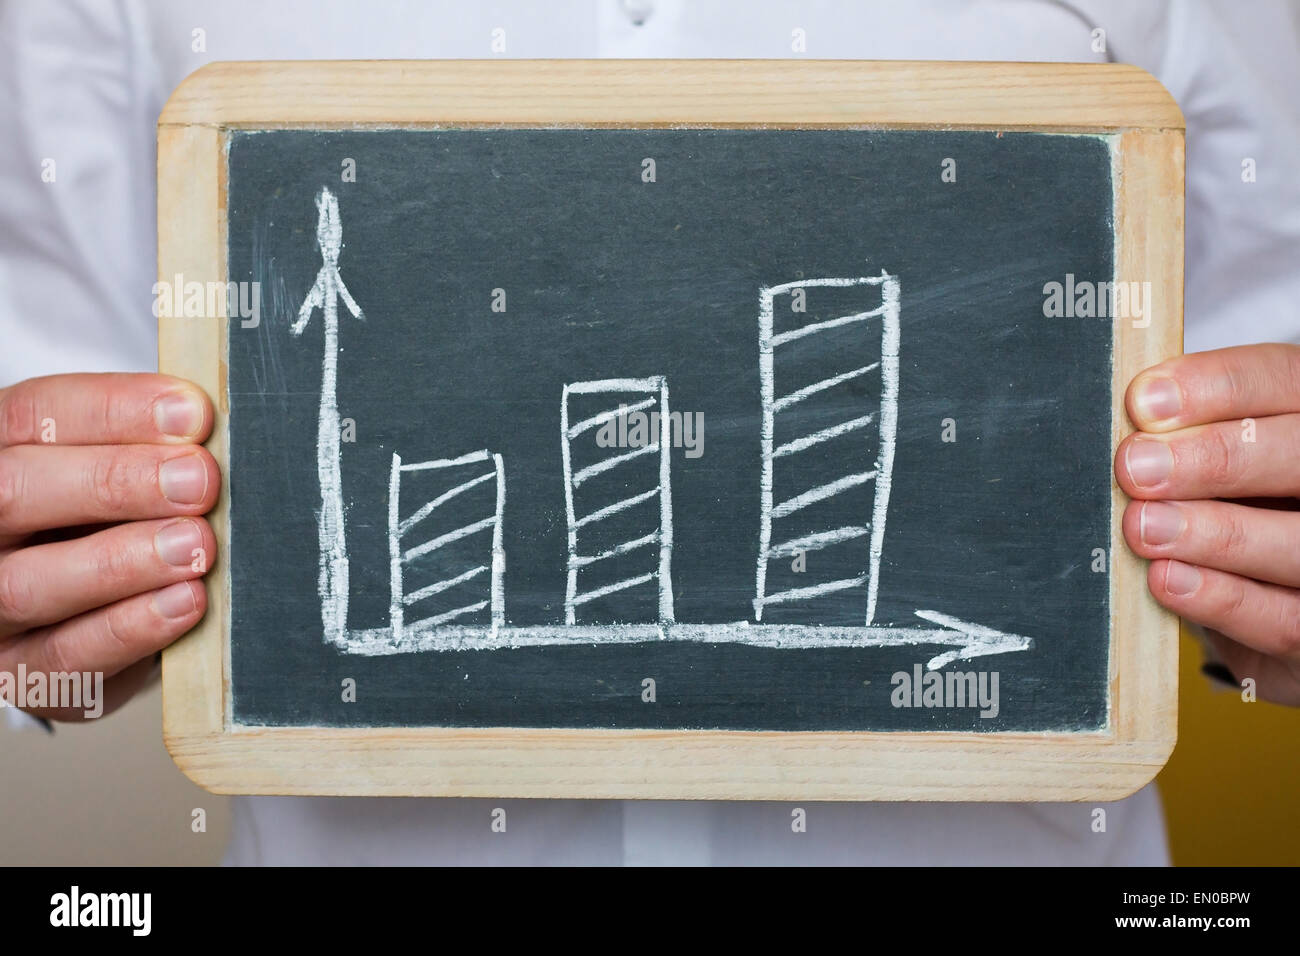 doctor hands showing chalkboard with chart - Stock Image